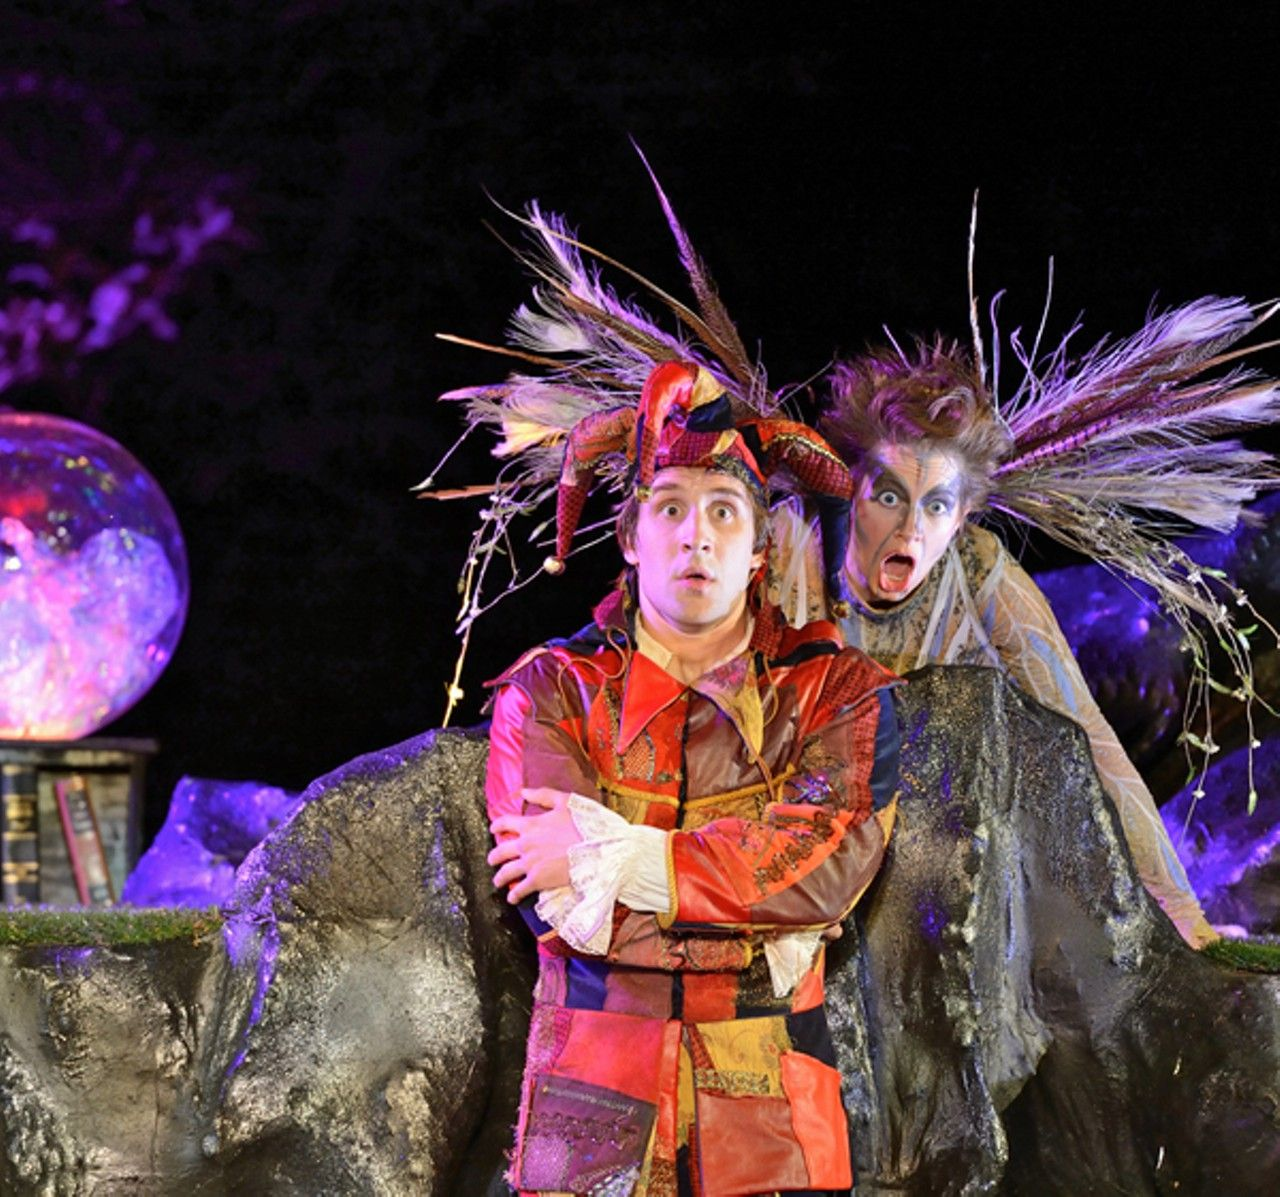 COURTESY OF THE TENNESSEE SHAKESPEARE COMPANY - Wolfe Coleman (Trinculo) and Caley Milliken (Ariel)in The Tempest